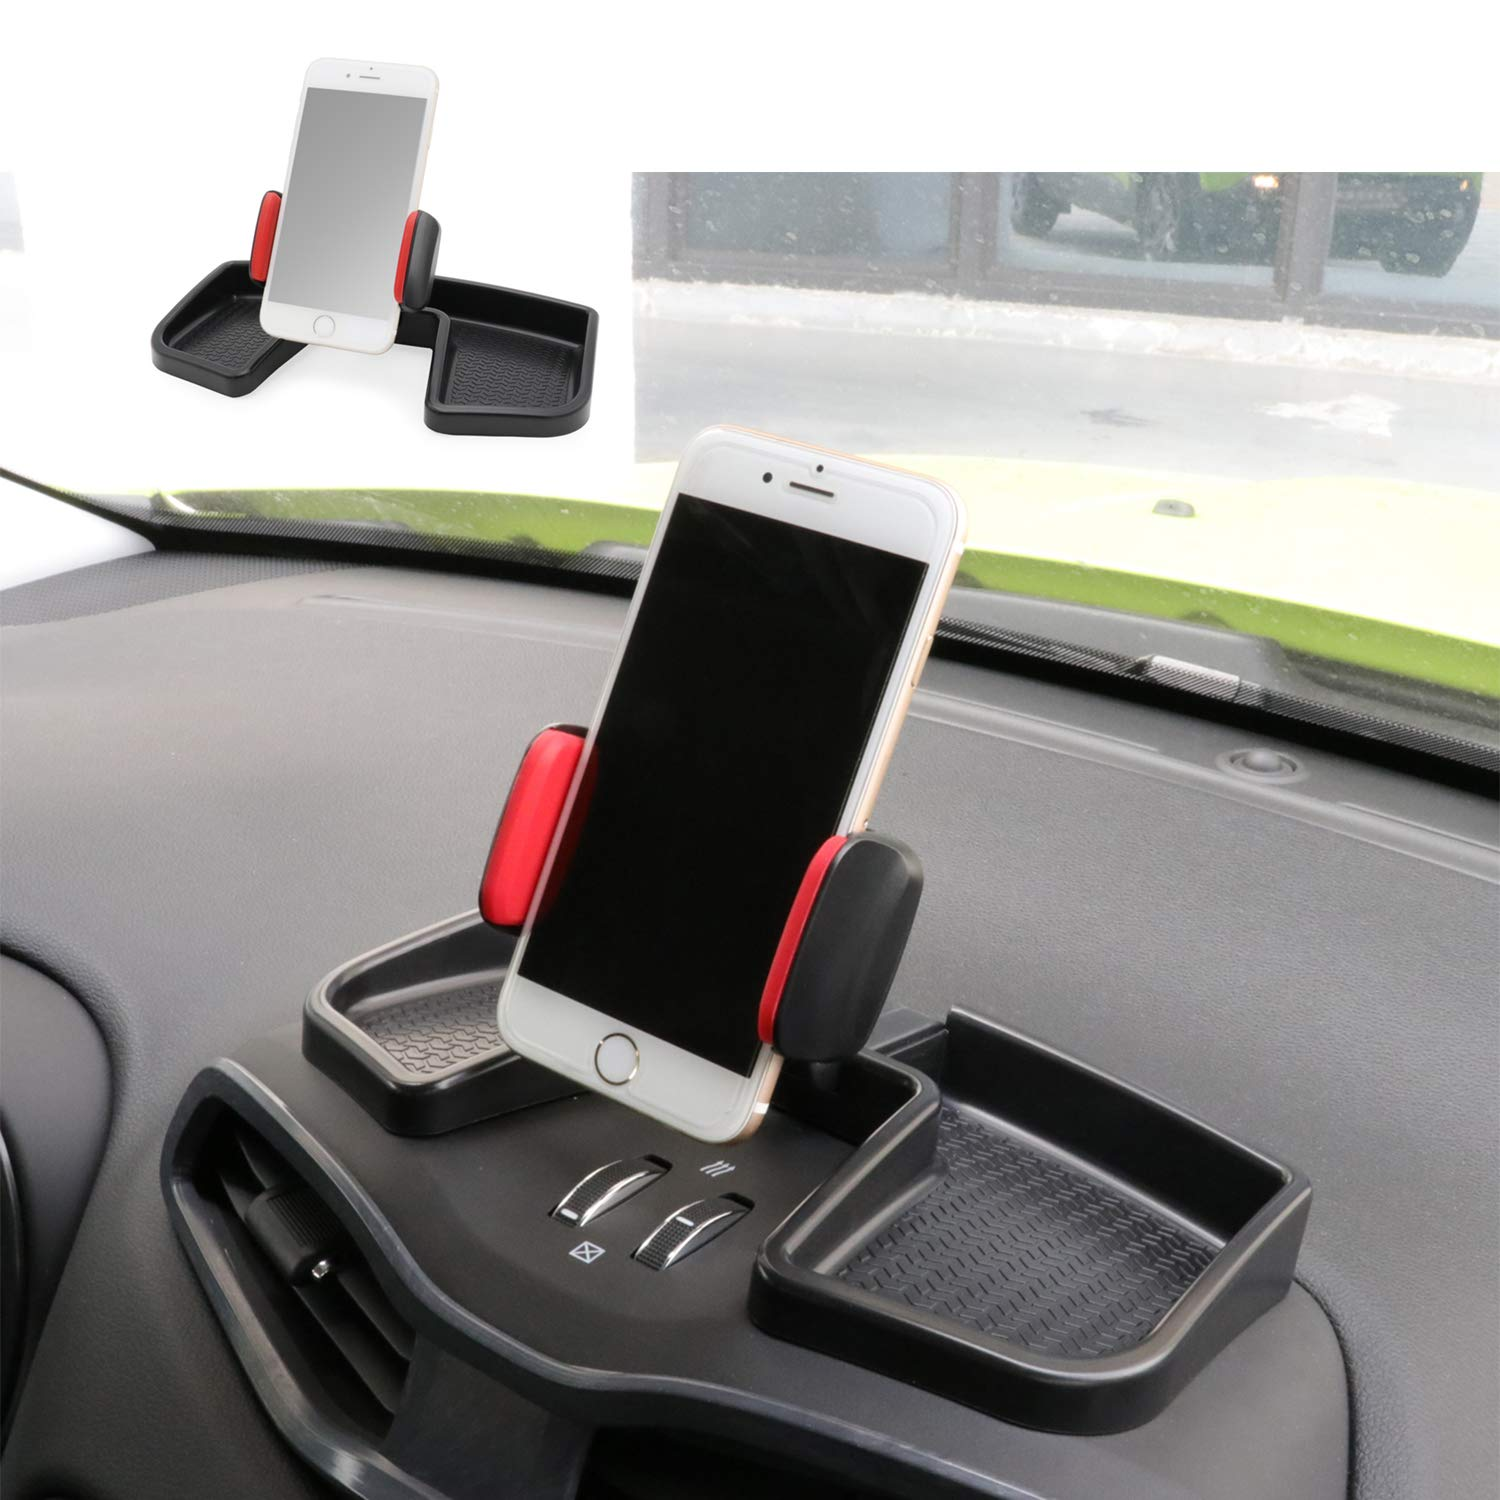 Camoo forJeep Renegade Phone & GPS Car Holder 360 Degree Rotation with Organizer Storage Adjustable Auto Mobile Holder Stand Kit FitsJeep Renegade 2015-2019 by Camoo